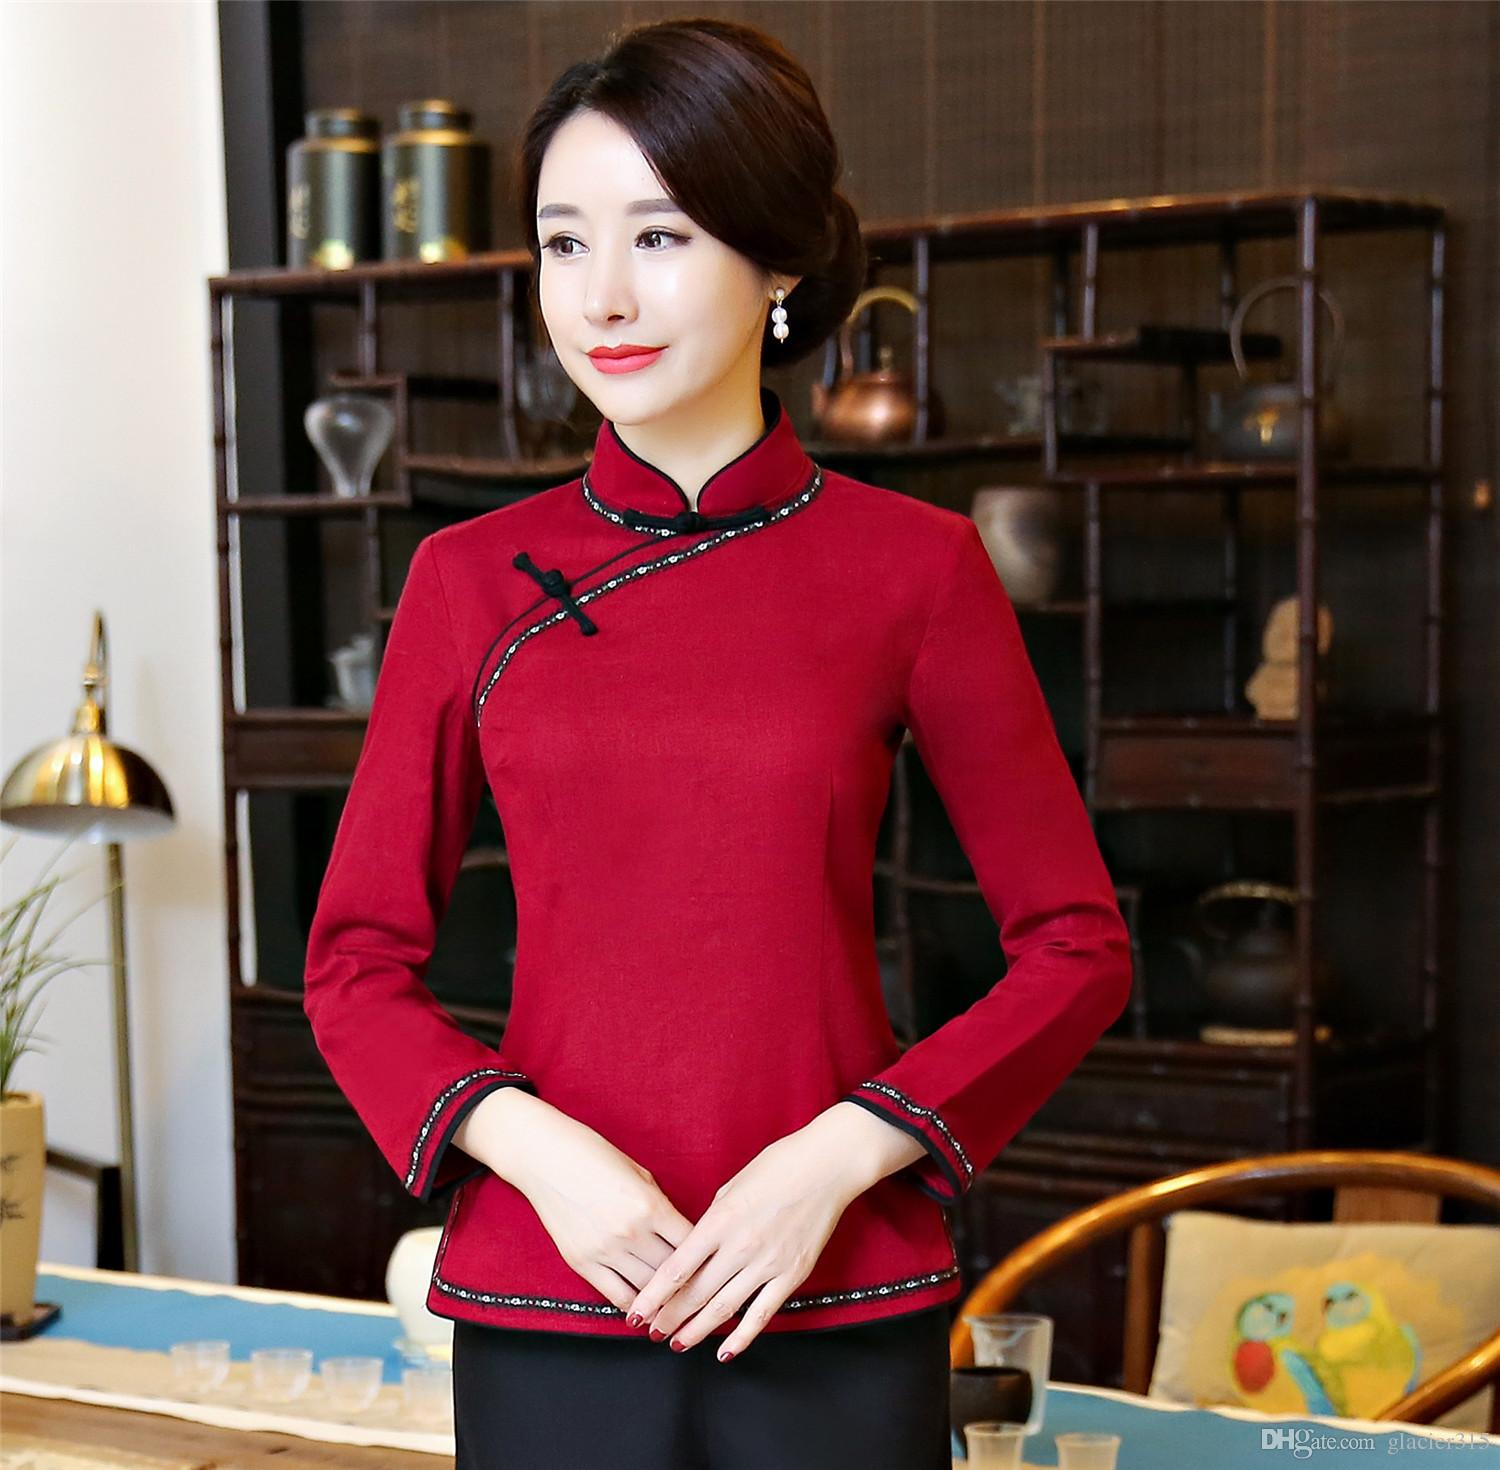 7e0f0881b8fb Shanghai Story Chinese Standing Collar Woman s Shirt Chinese Traditional Top  Long Sleeve Cheongsam Top Chinese Linen Blouse Chinese Traditional Clothing  ...